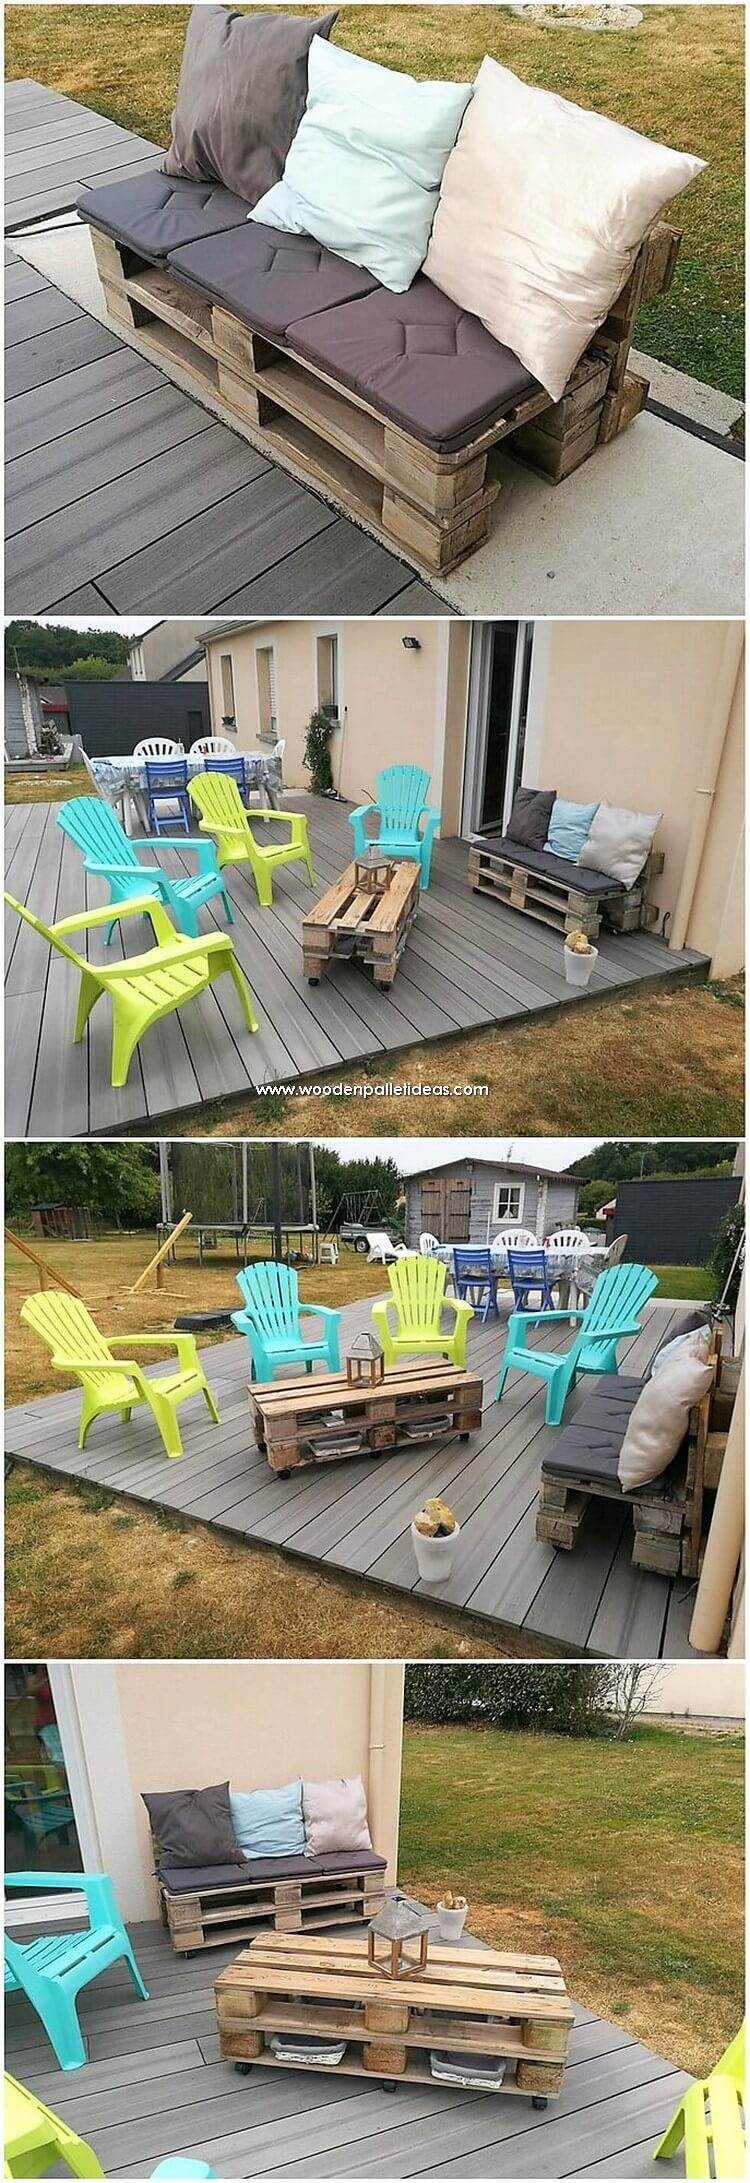 Pallet Furniture with Garden Terrace